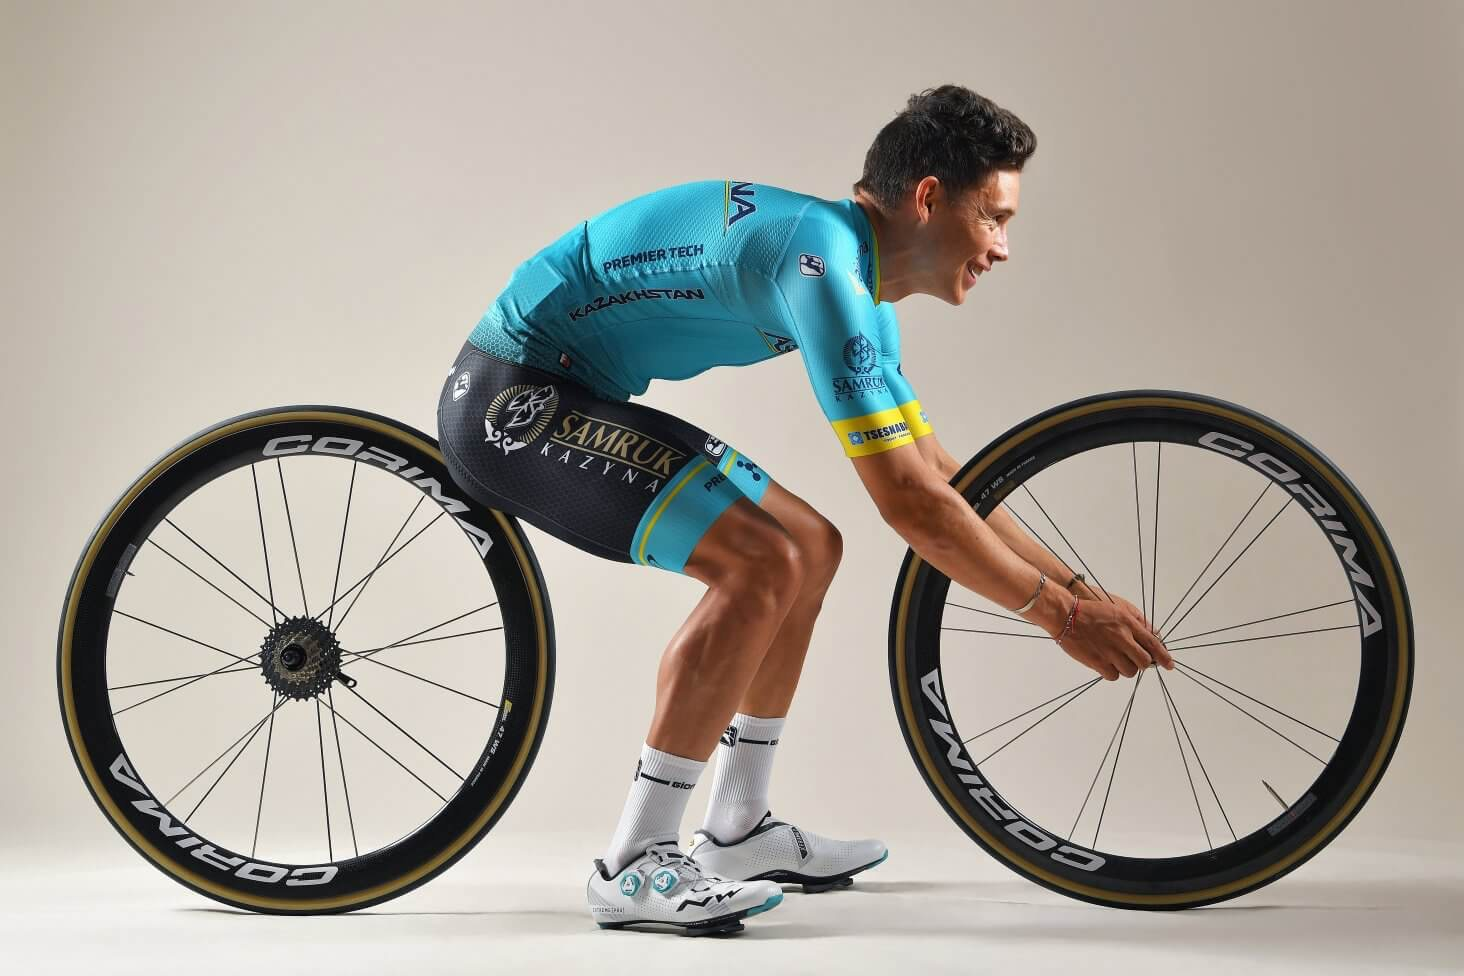 Northwave - Astana Pro team aims big with Northwave Extreme Pro